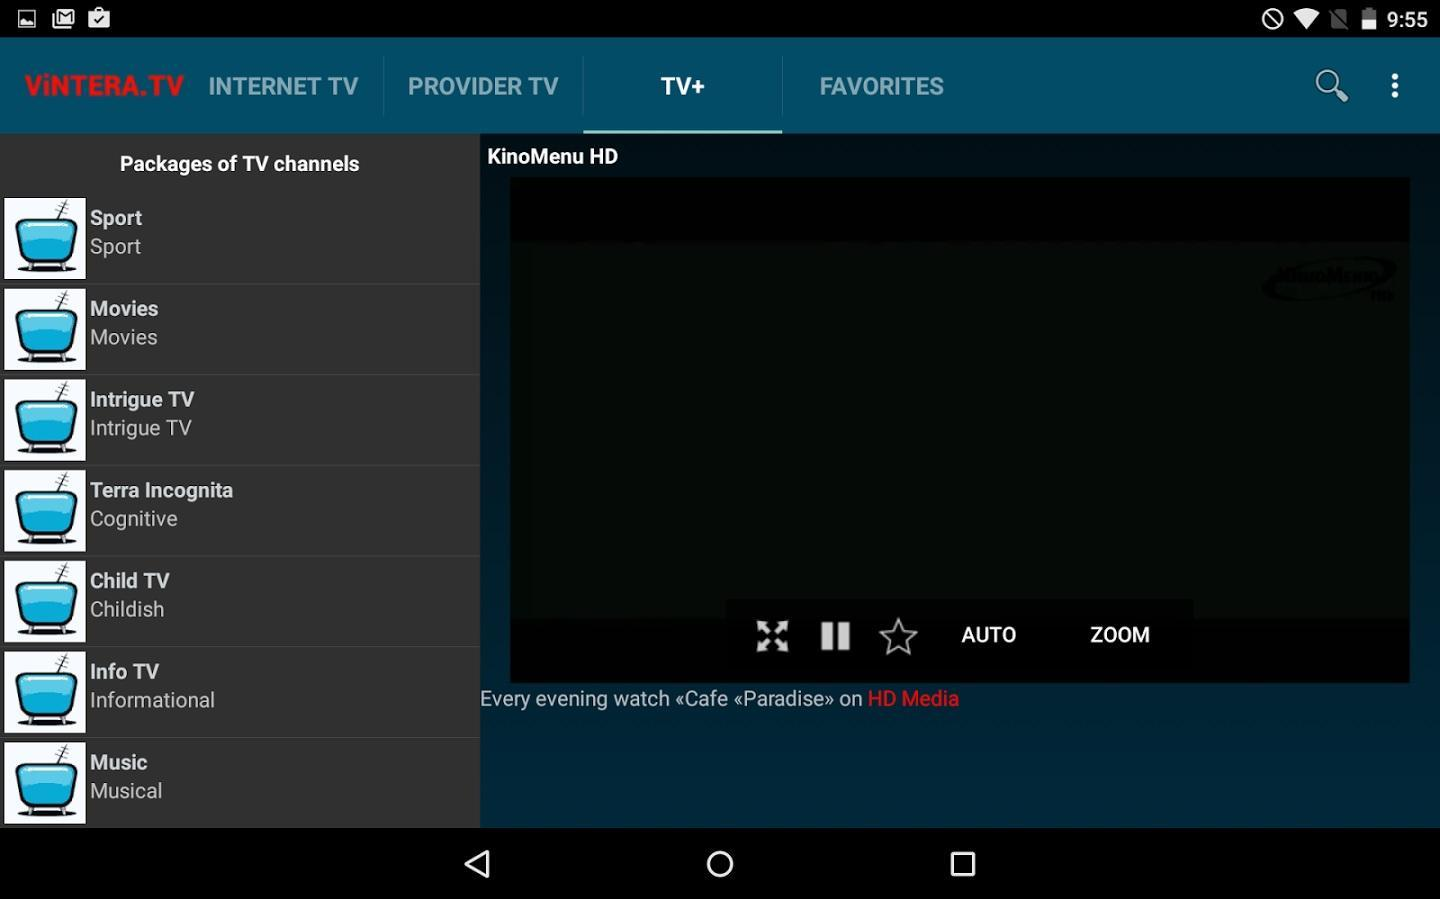 ViNTERA TV for Android - APK Download